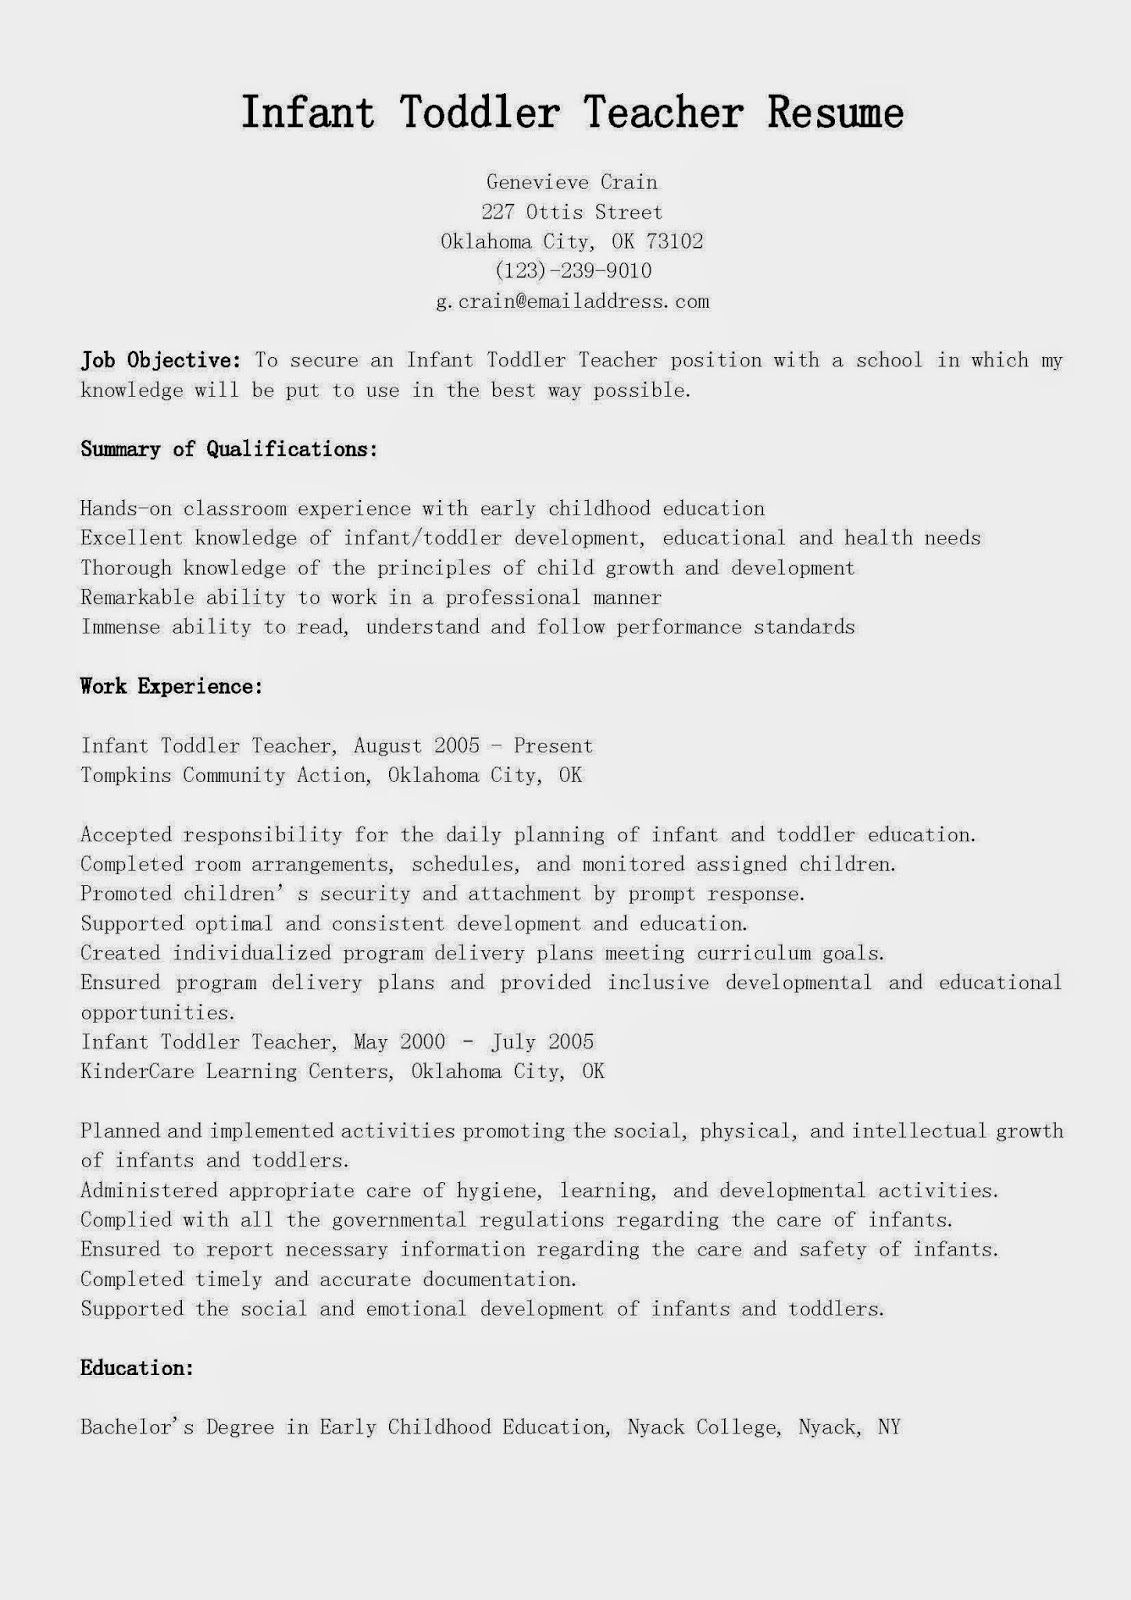 Resume Preschool Teacher Description For Resume infant teacher resume preschool samples visualcv 17 best ideas about template resume